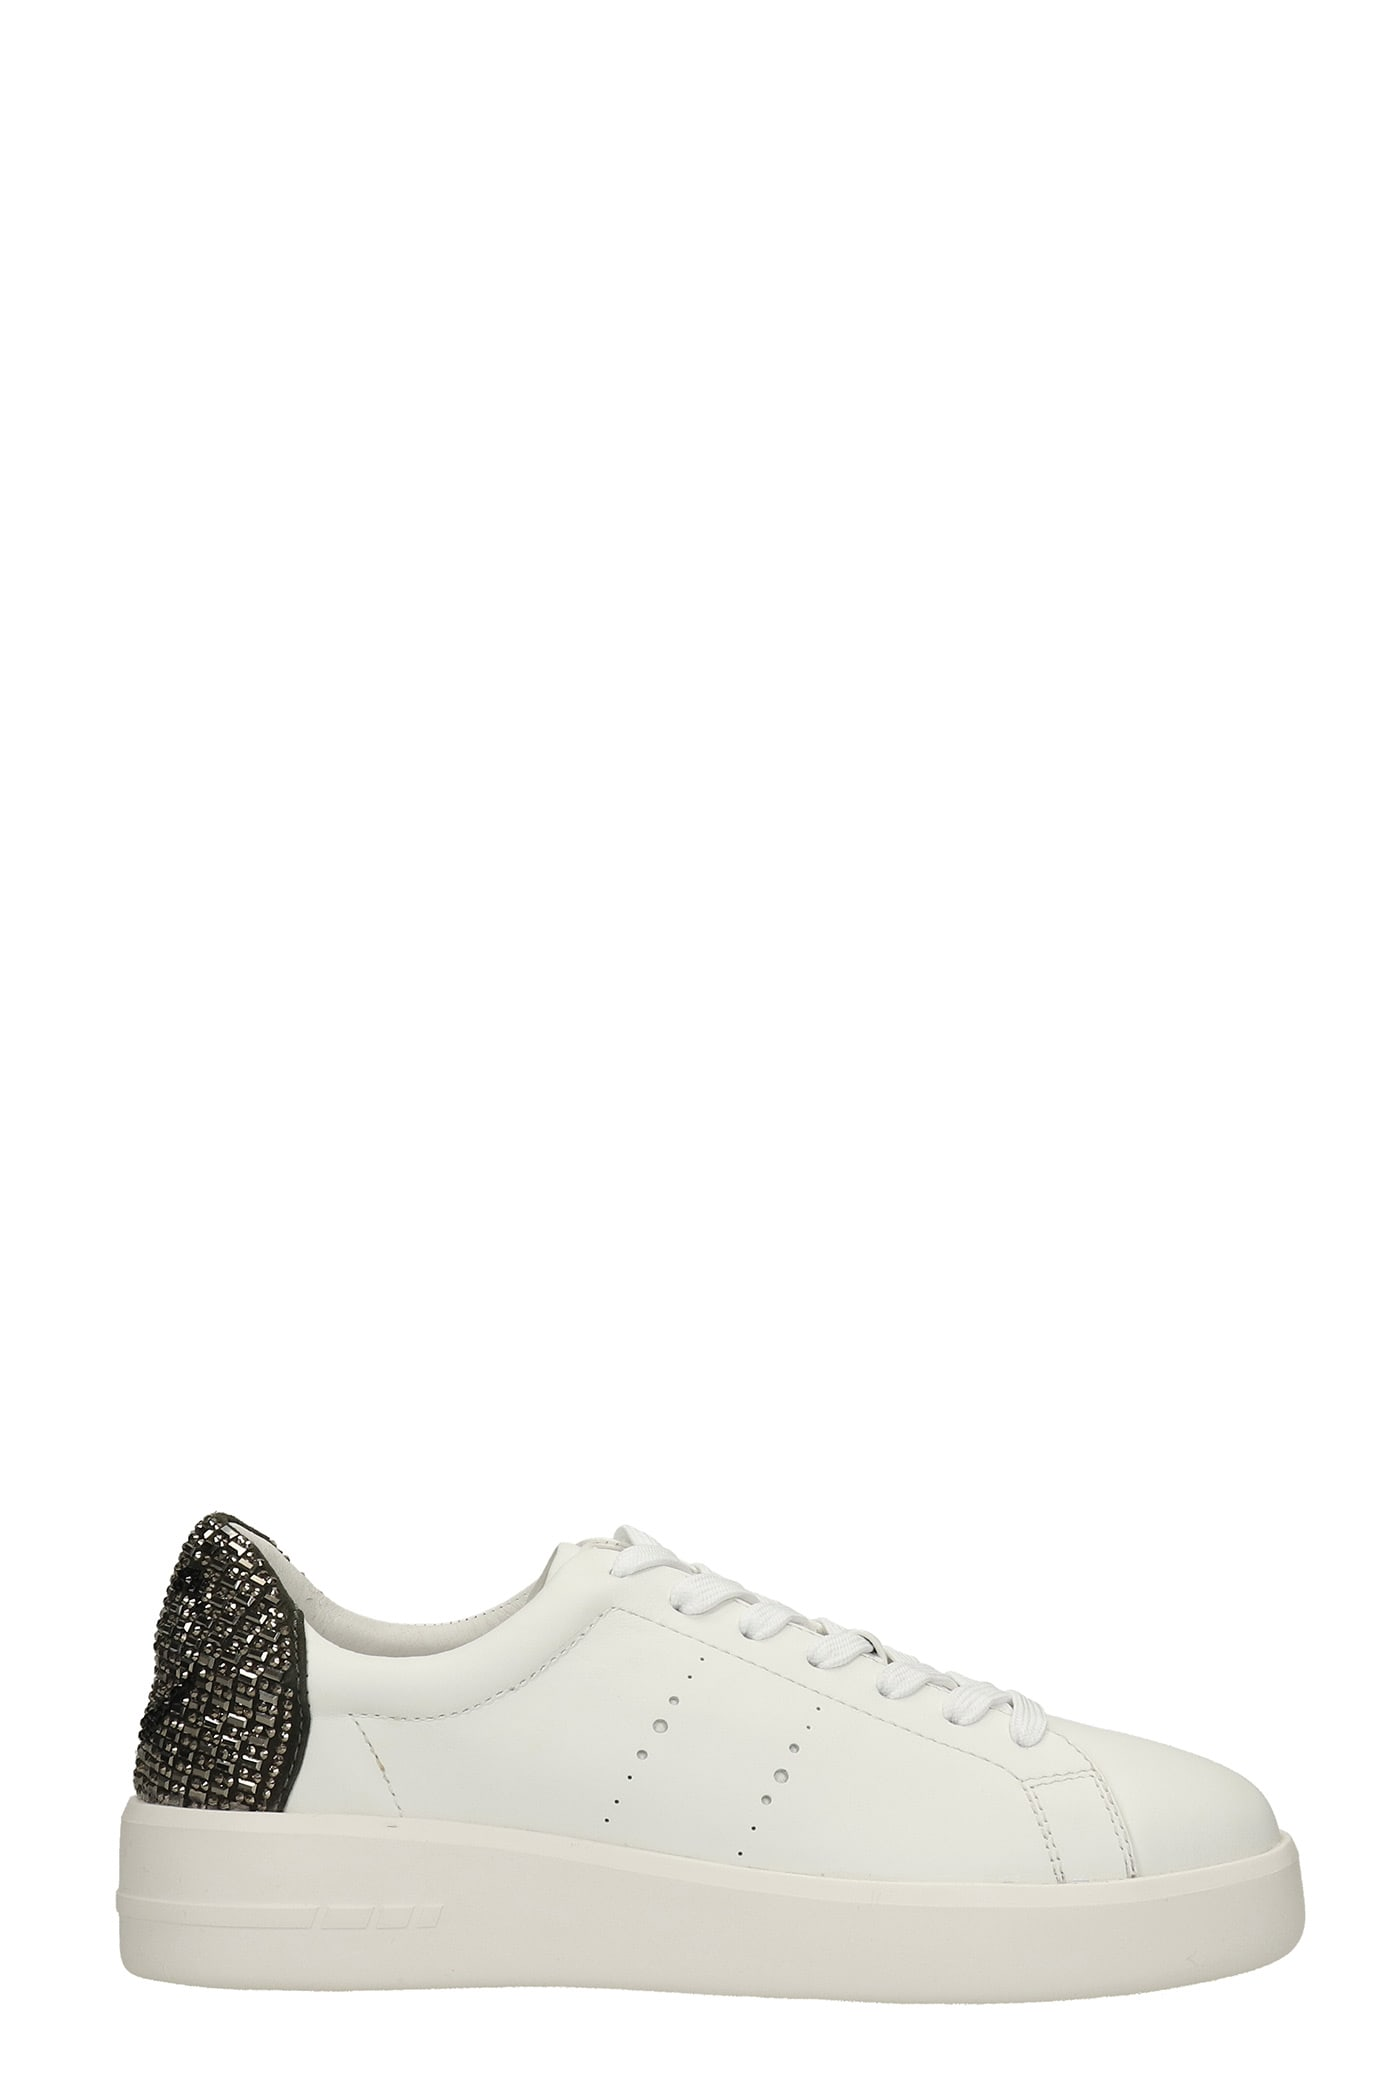 Sneakers In White Leather